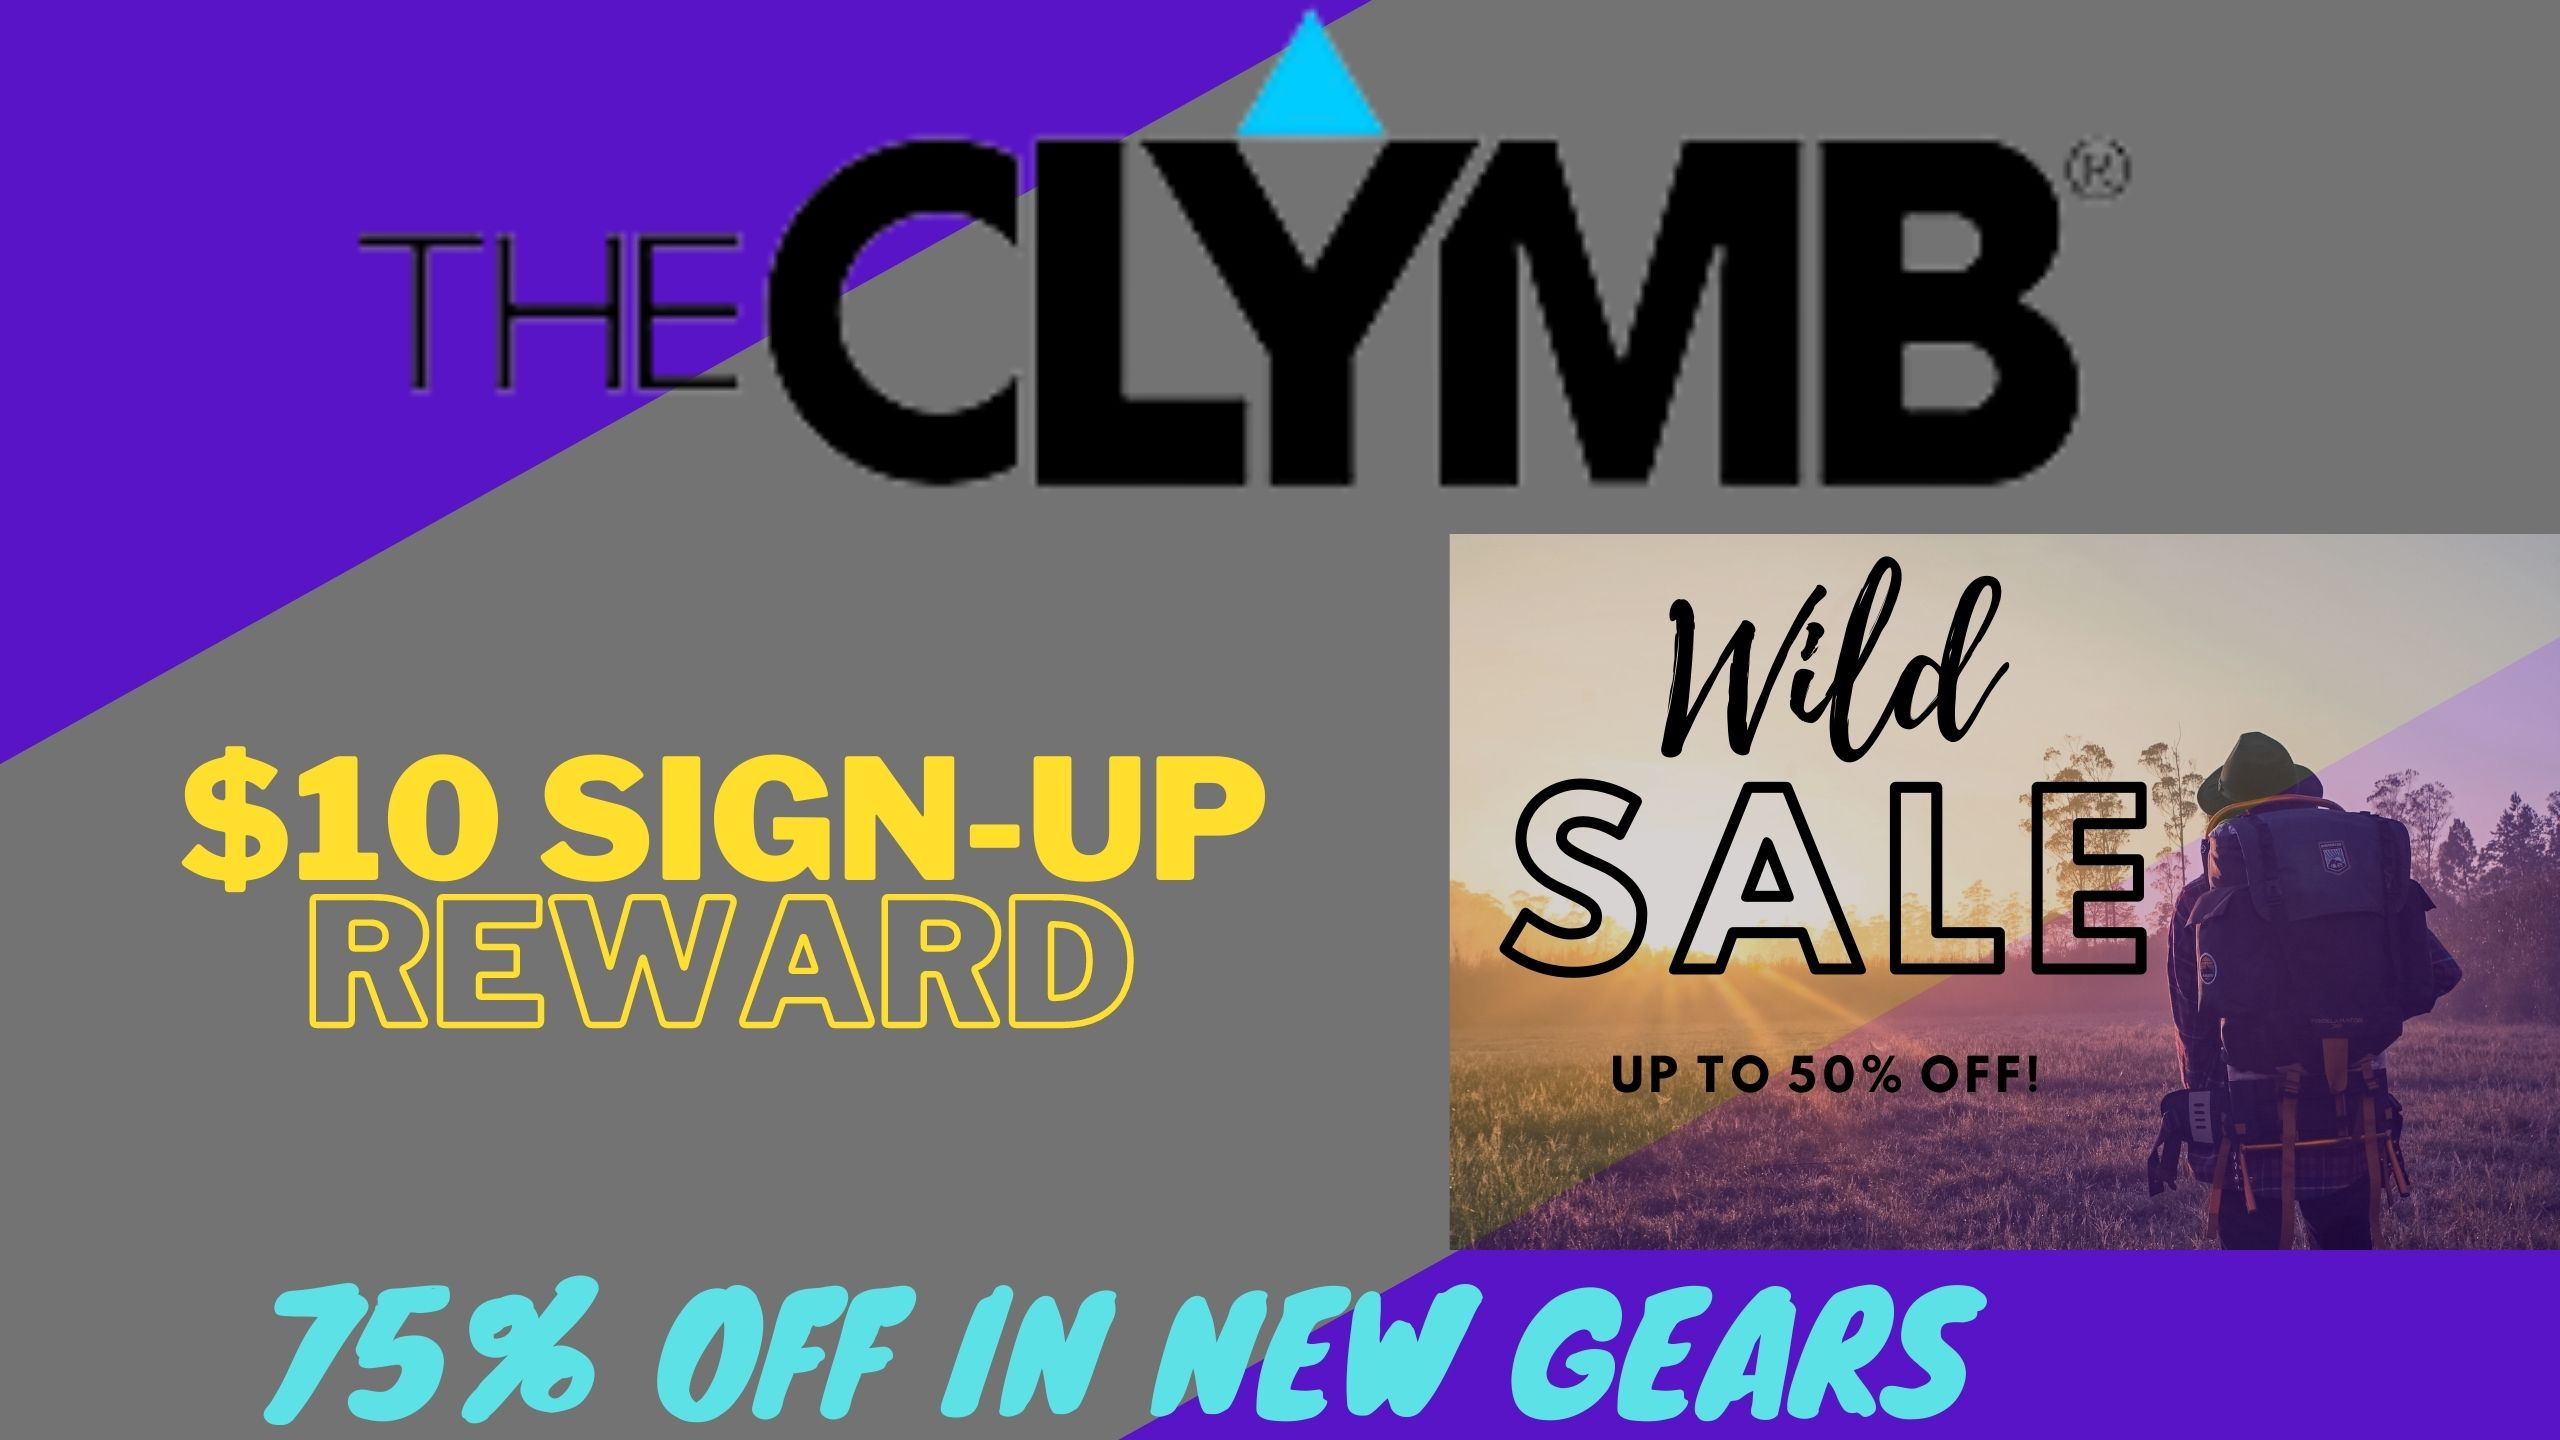 The Clymbs Promo Code